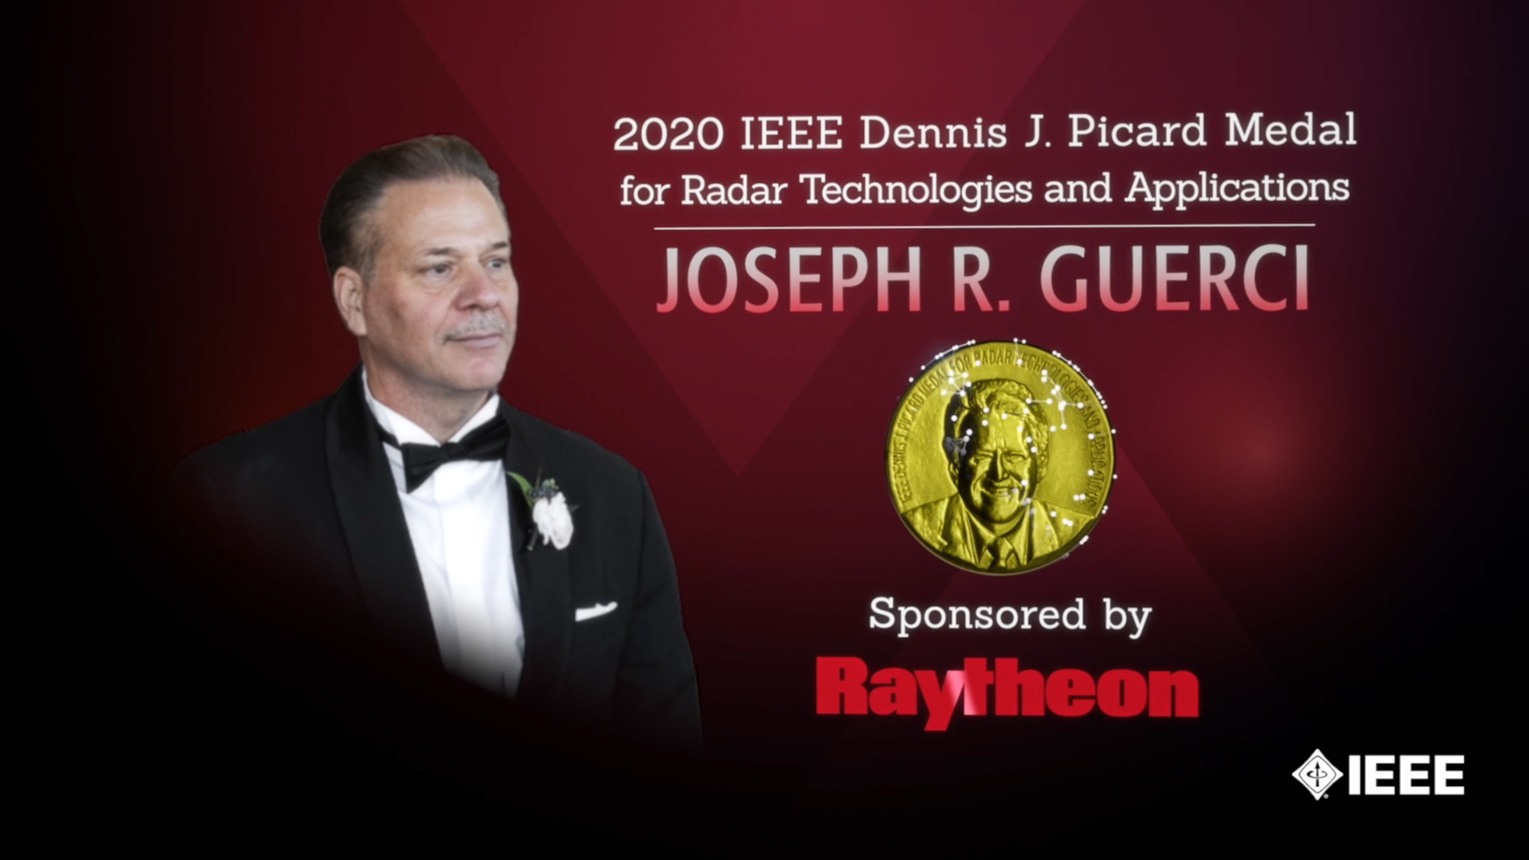 Honors 2020: Joseph R. Guerci Wins the IEEE Dennis J. Picard Medal for Radar Technologies and Applications